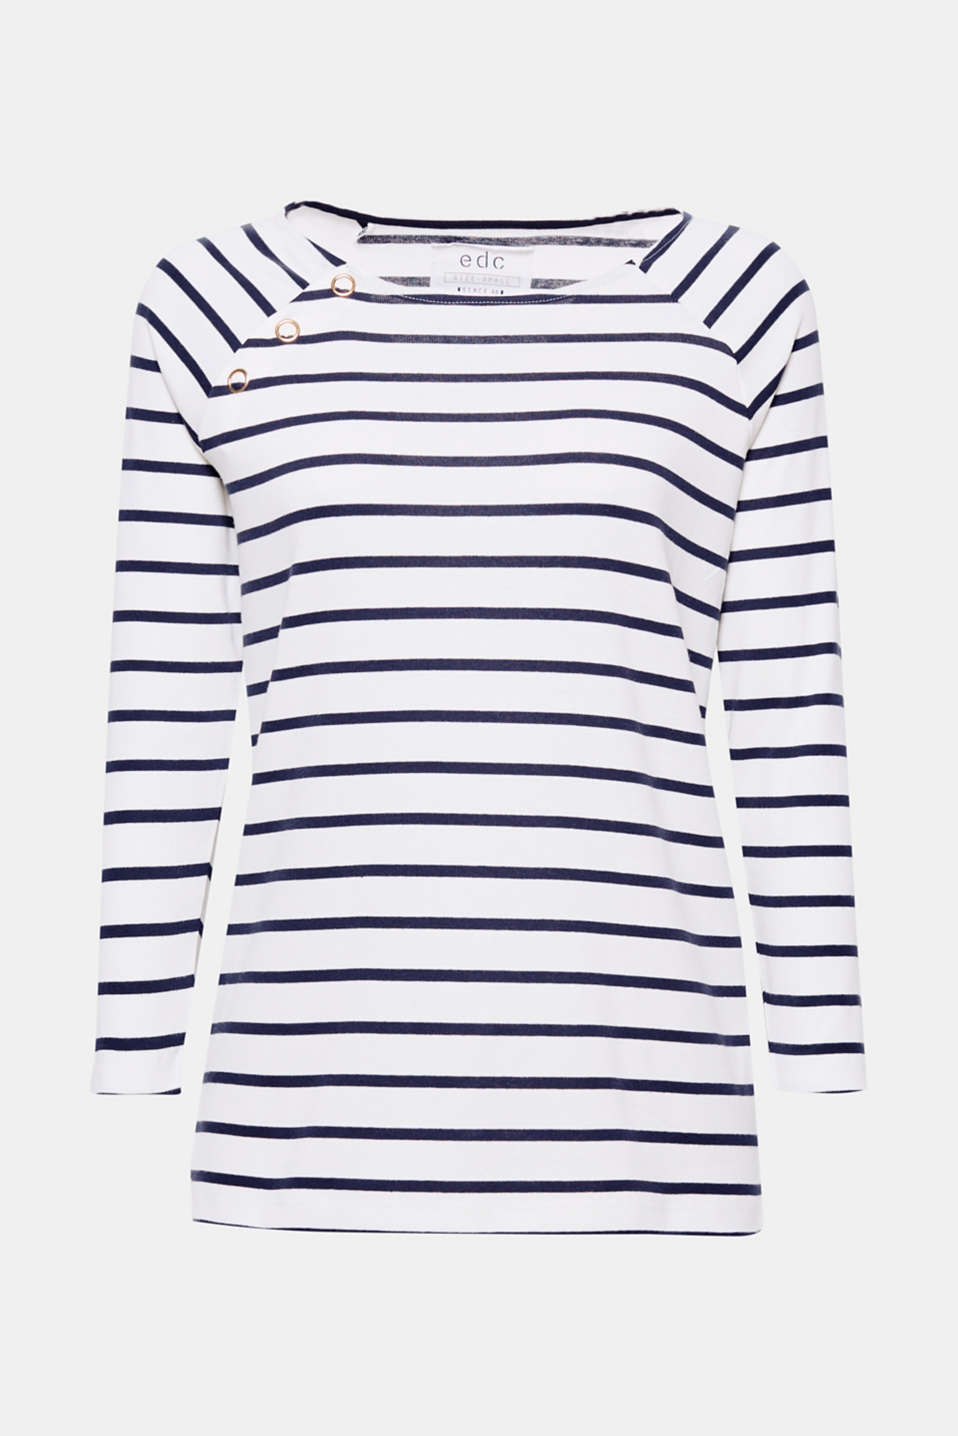 All-time favourite: the soft, shape-retaining ribbed jersey made of stretch cotton and the classic stripes make this top a fashion favourite.